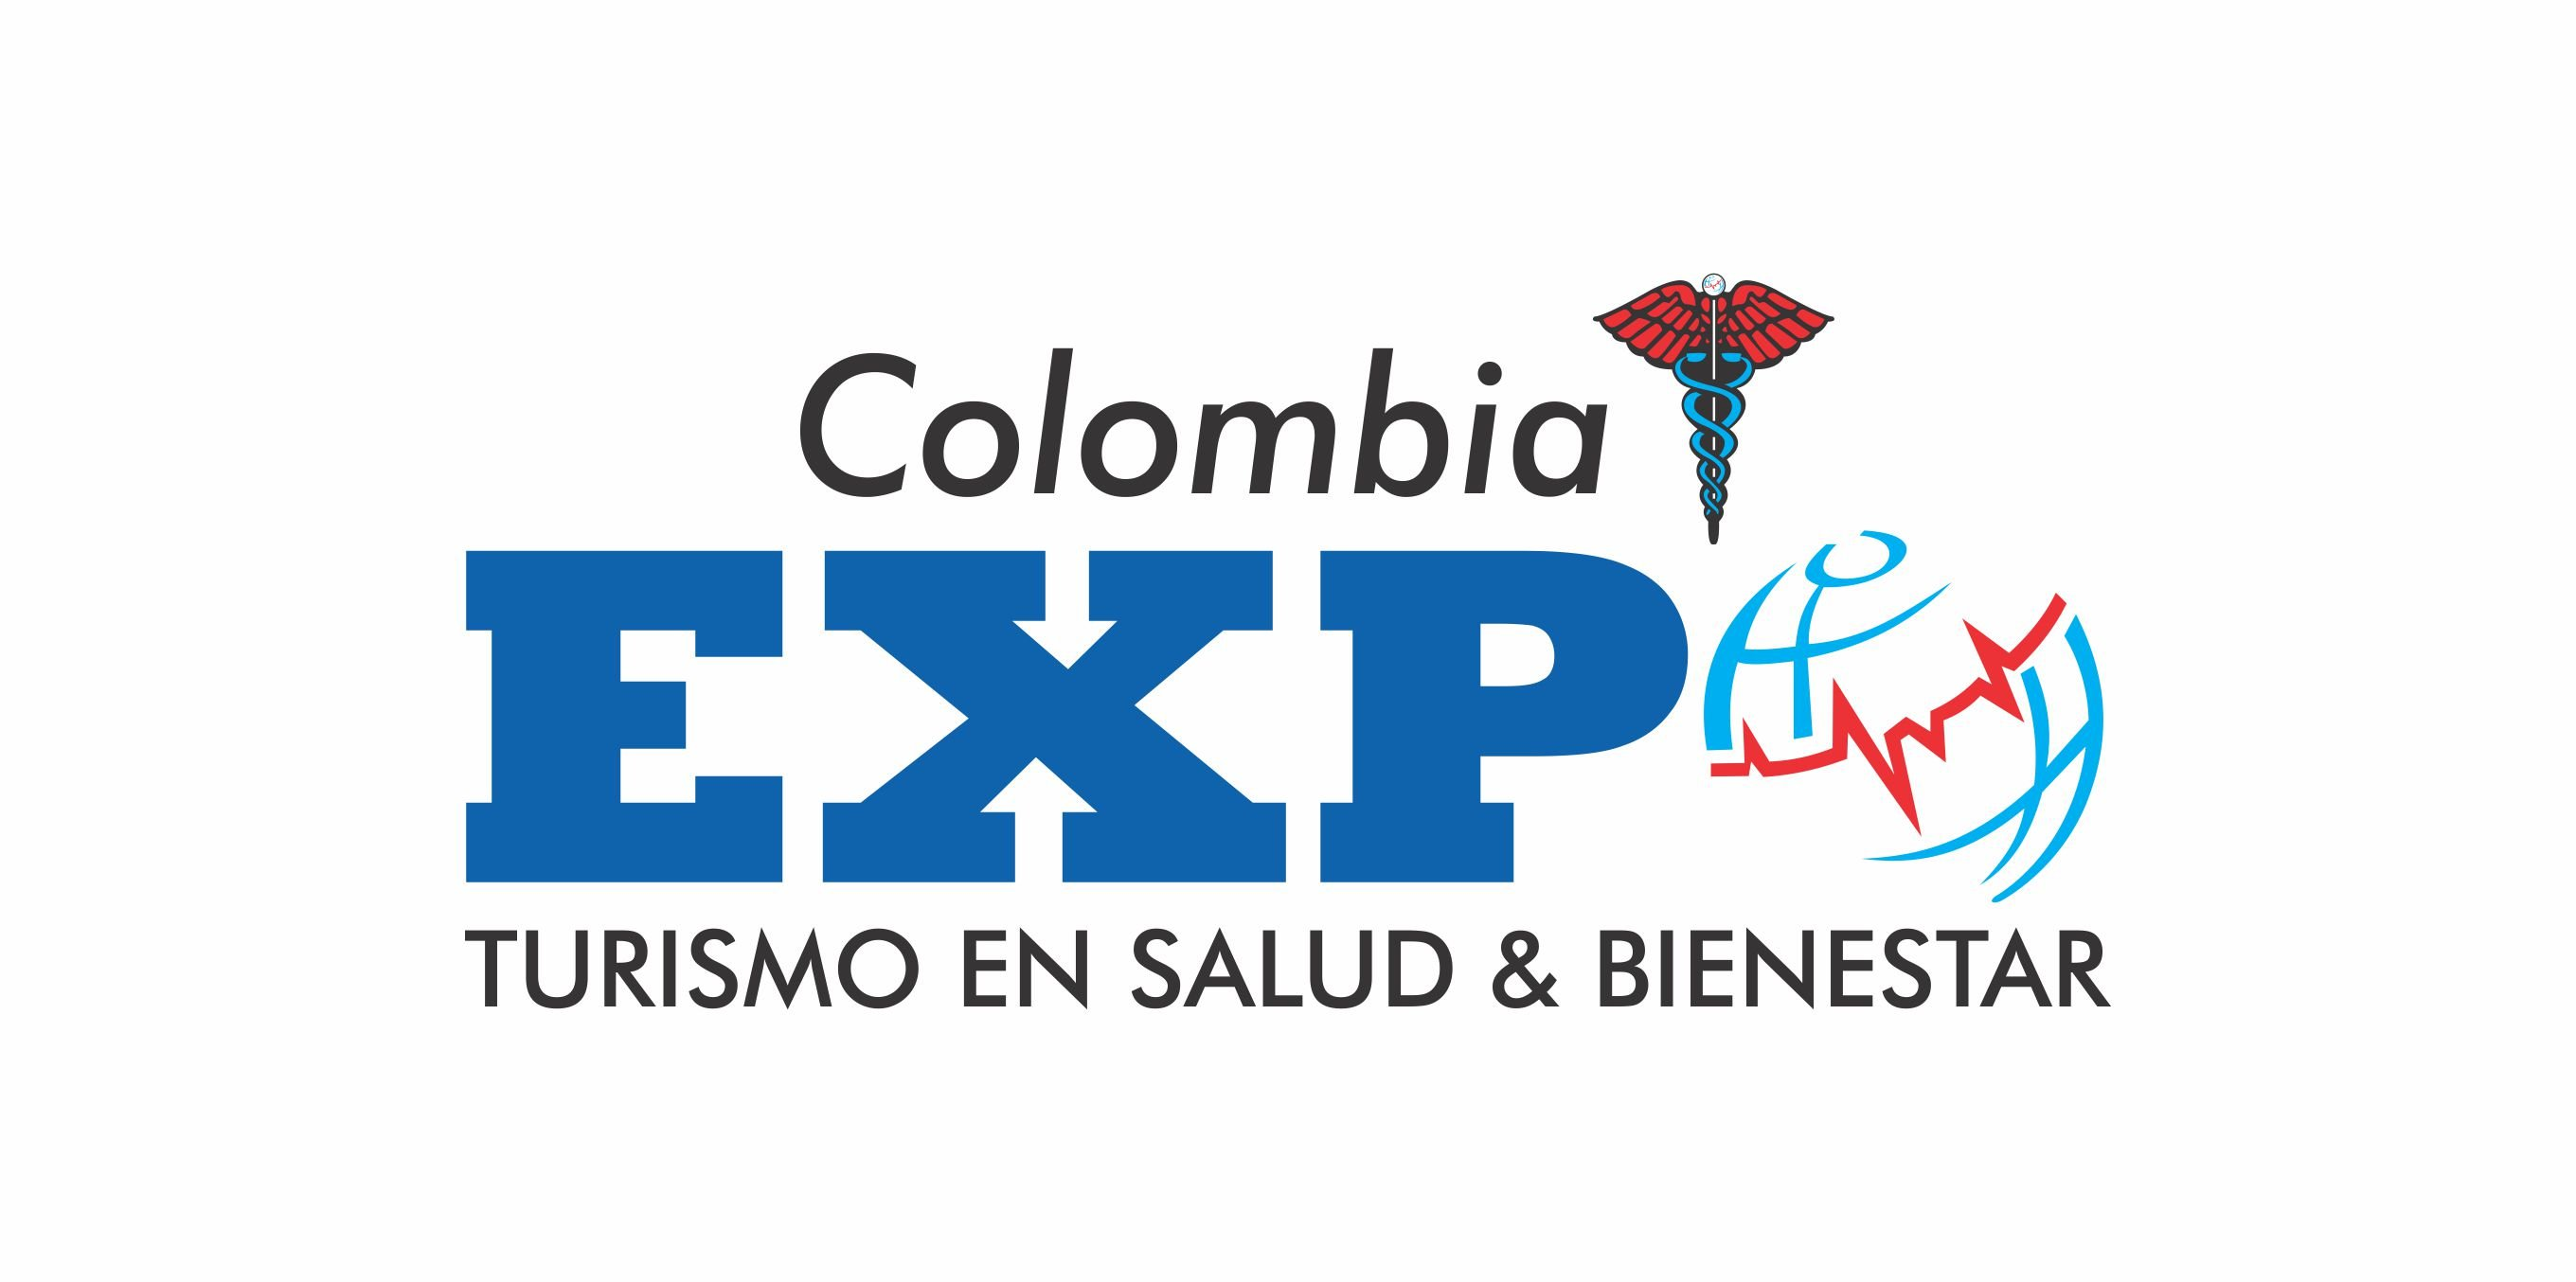 Colombia Expo 2018